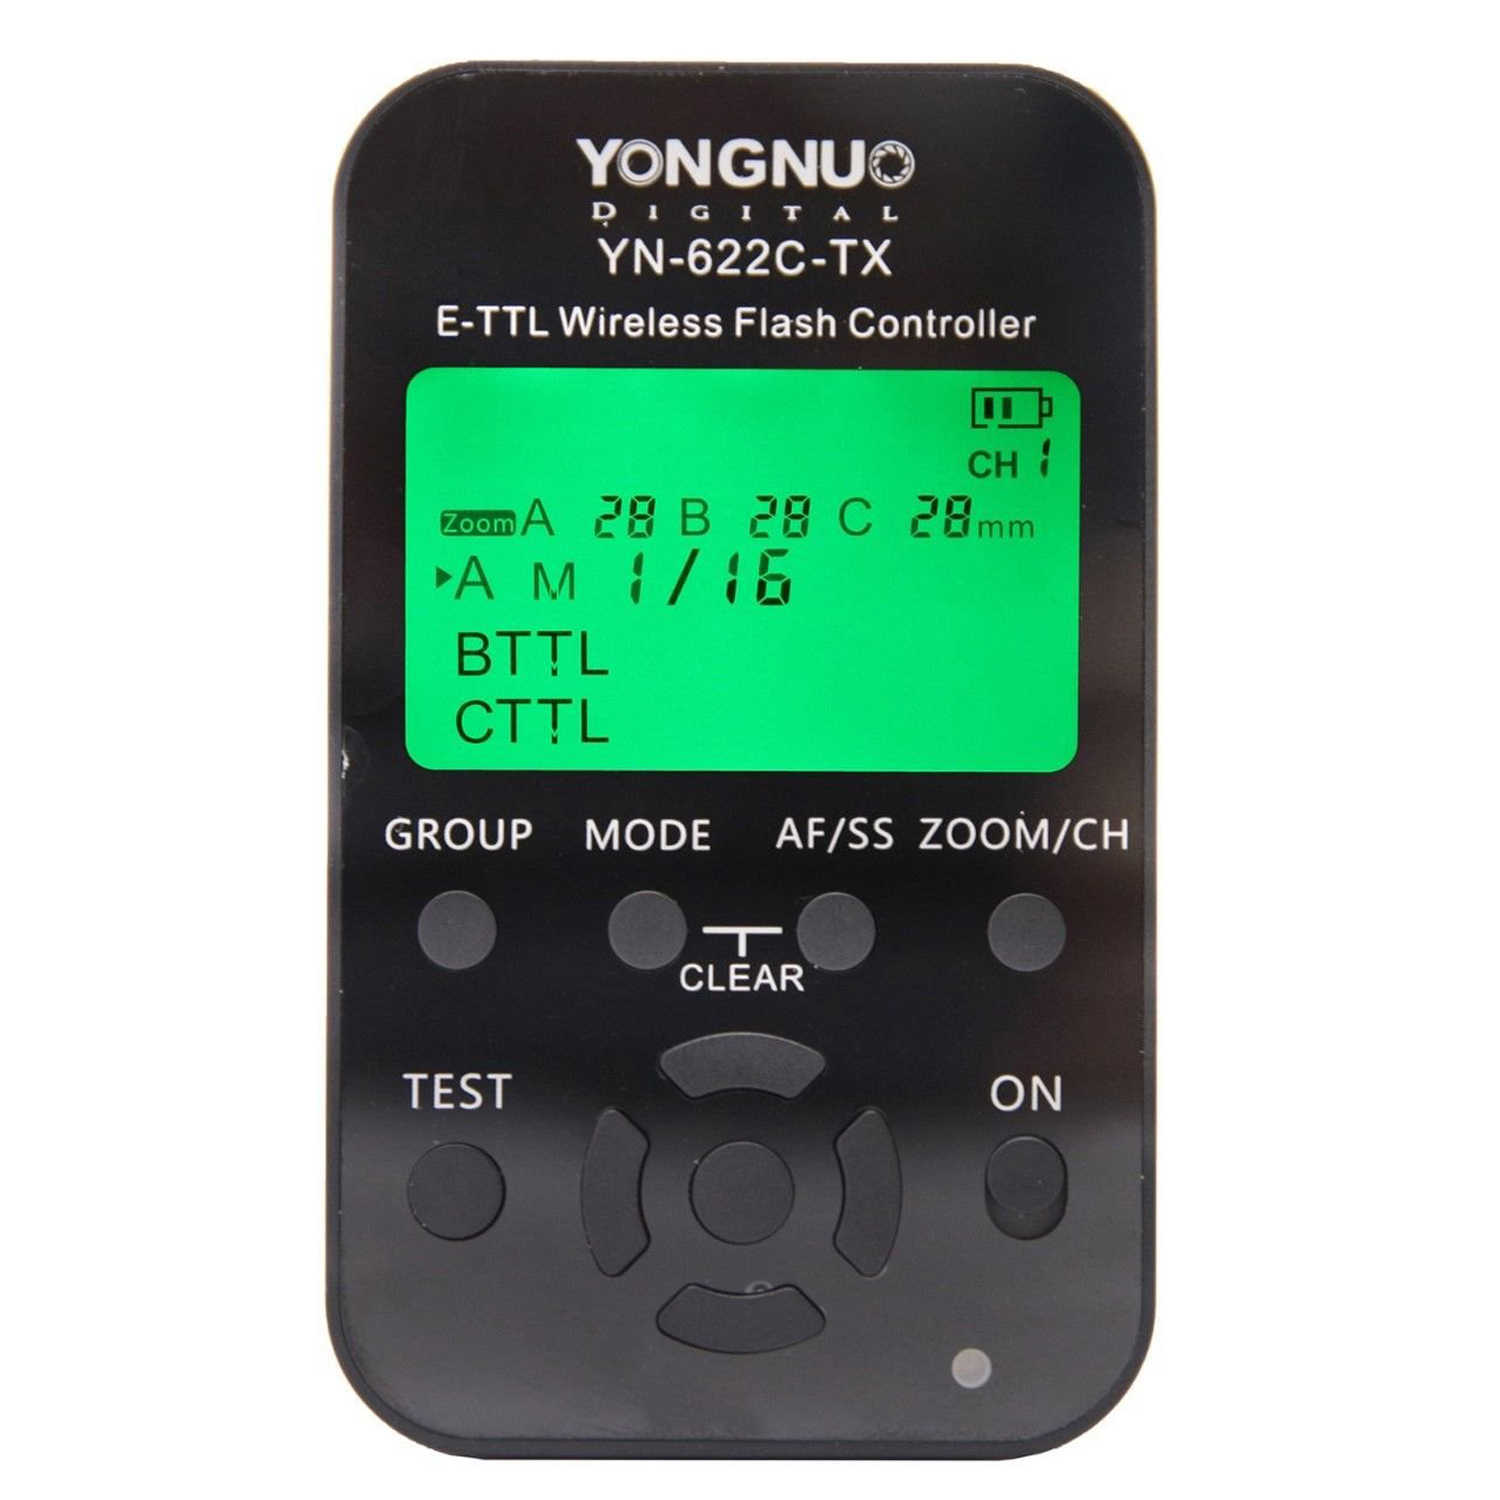 Yongnuo YN-622C-TX, E-TTL Wireless Flash Controller for Canon, YN622C-TX